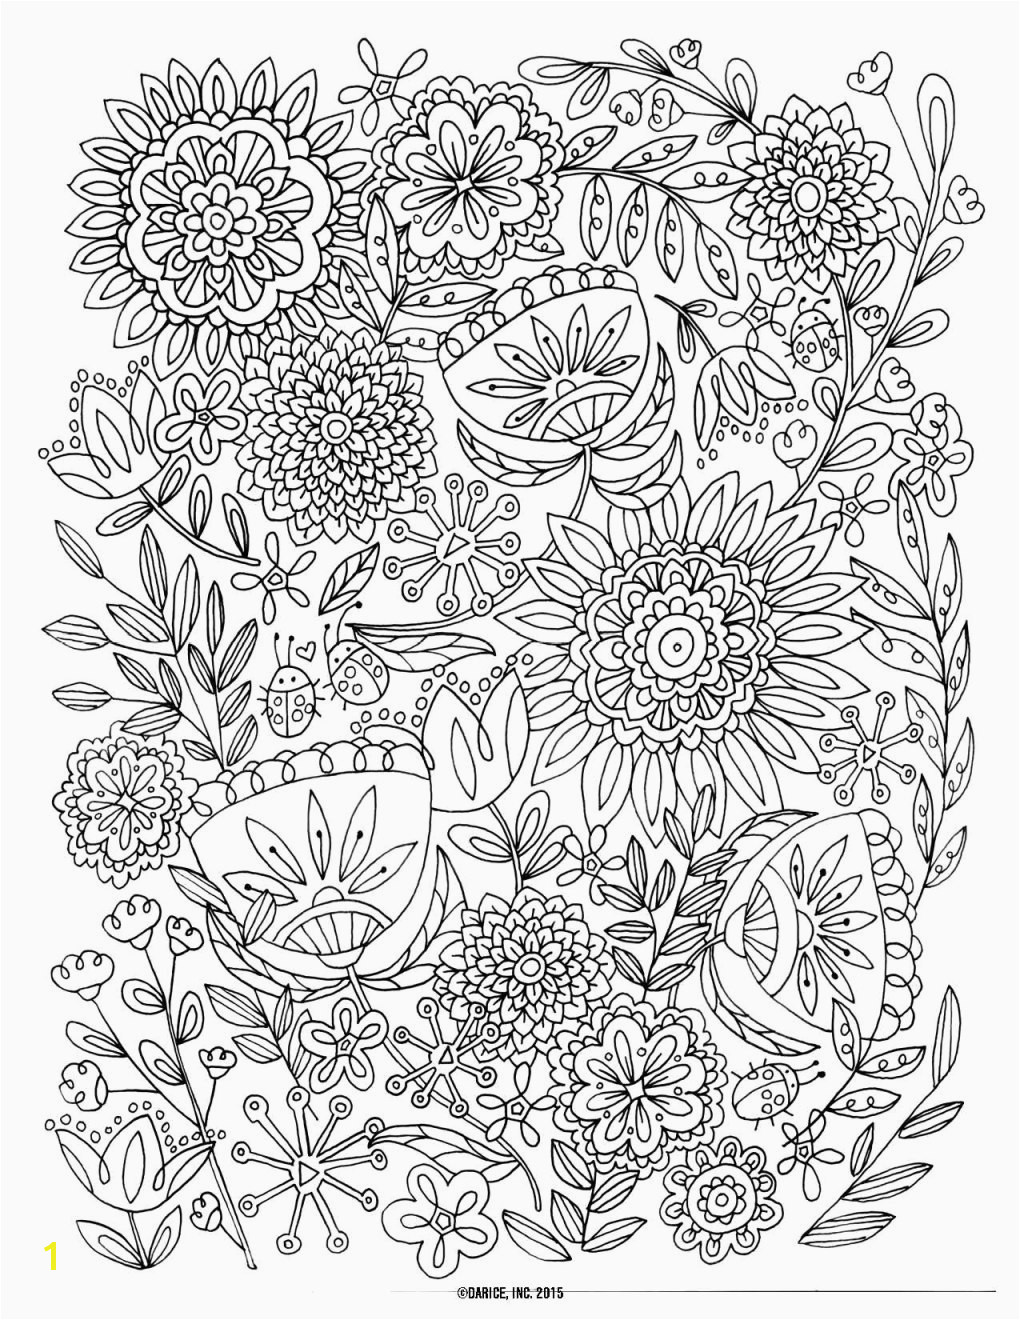 Coloring Games Book Awesome Coloring Book Info Awesome S Coloring Pages Book Coloring Pages